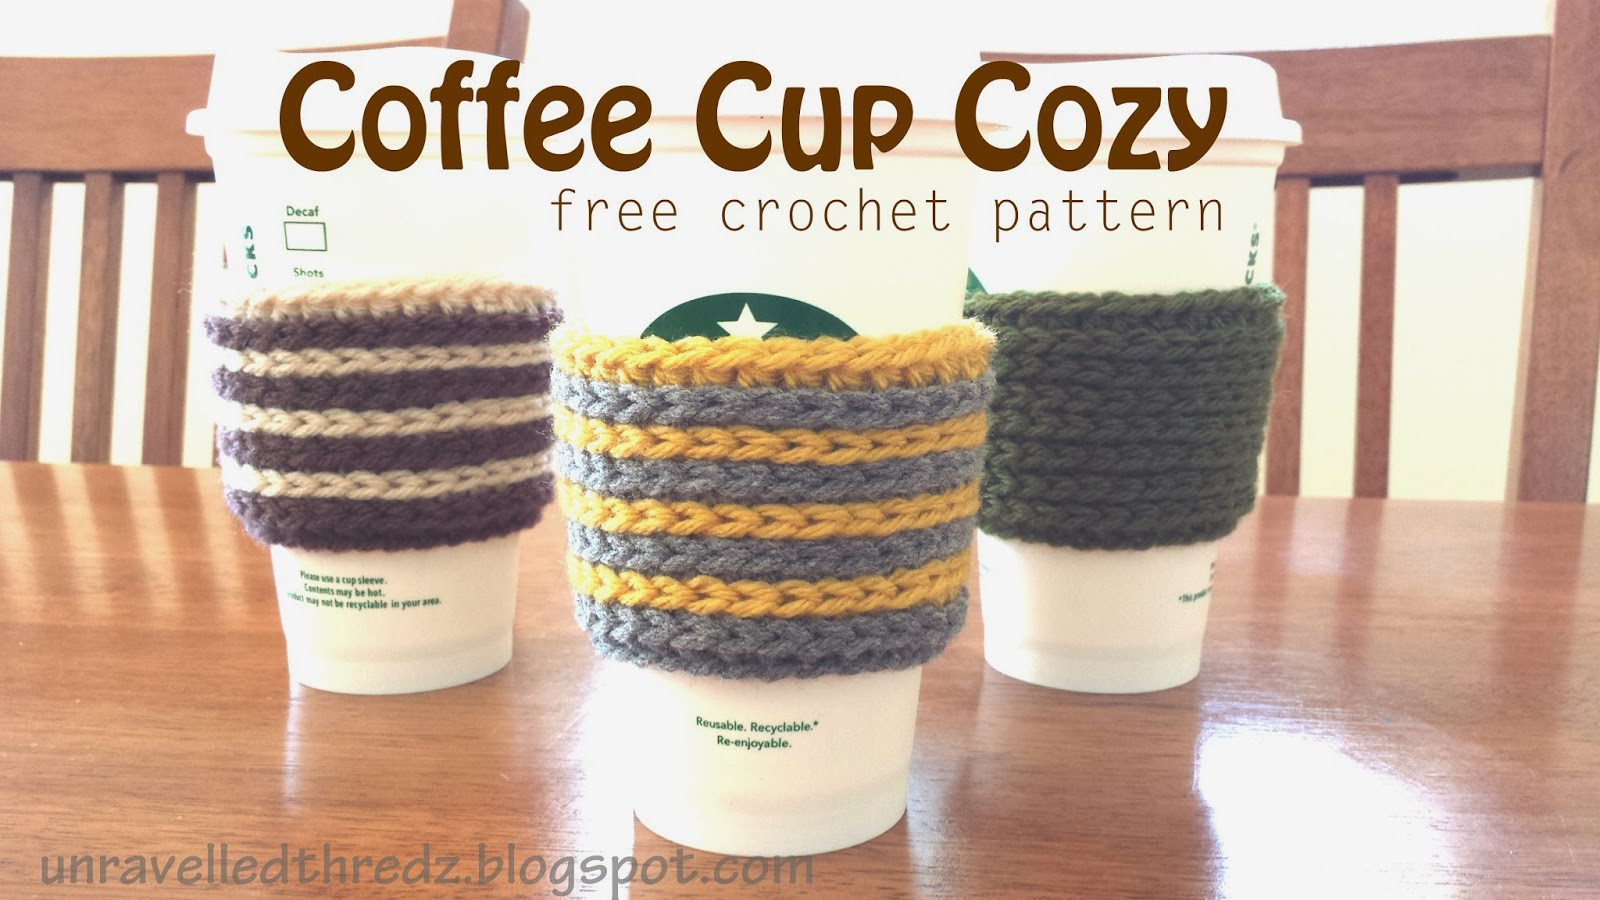 Crochet Coffee Cup Cozy Inspirational Crochet Class Beginning Crochet Sparkleez Crystles Of Crochet Coffee Cup Cozy Inspirational 35 Easy Crochet Patterns